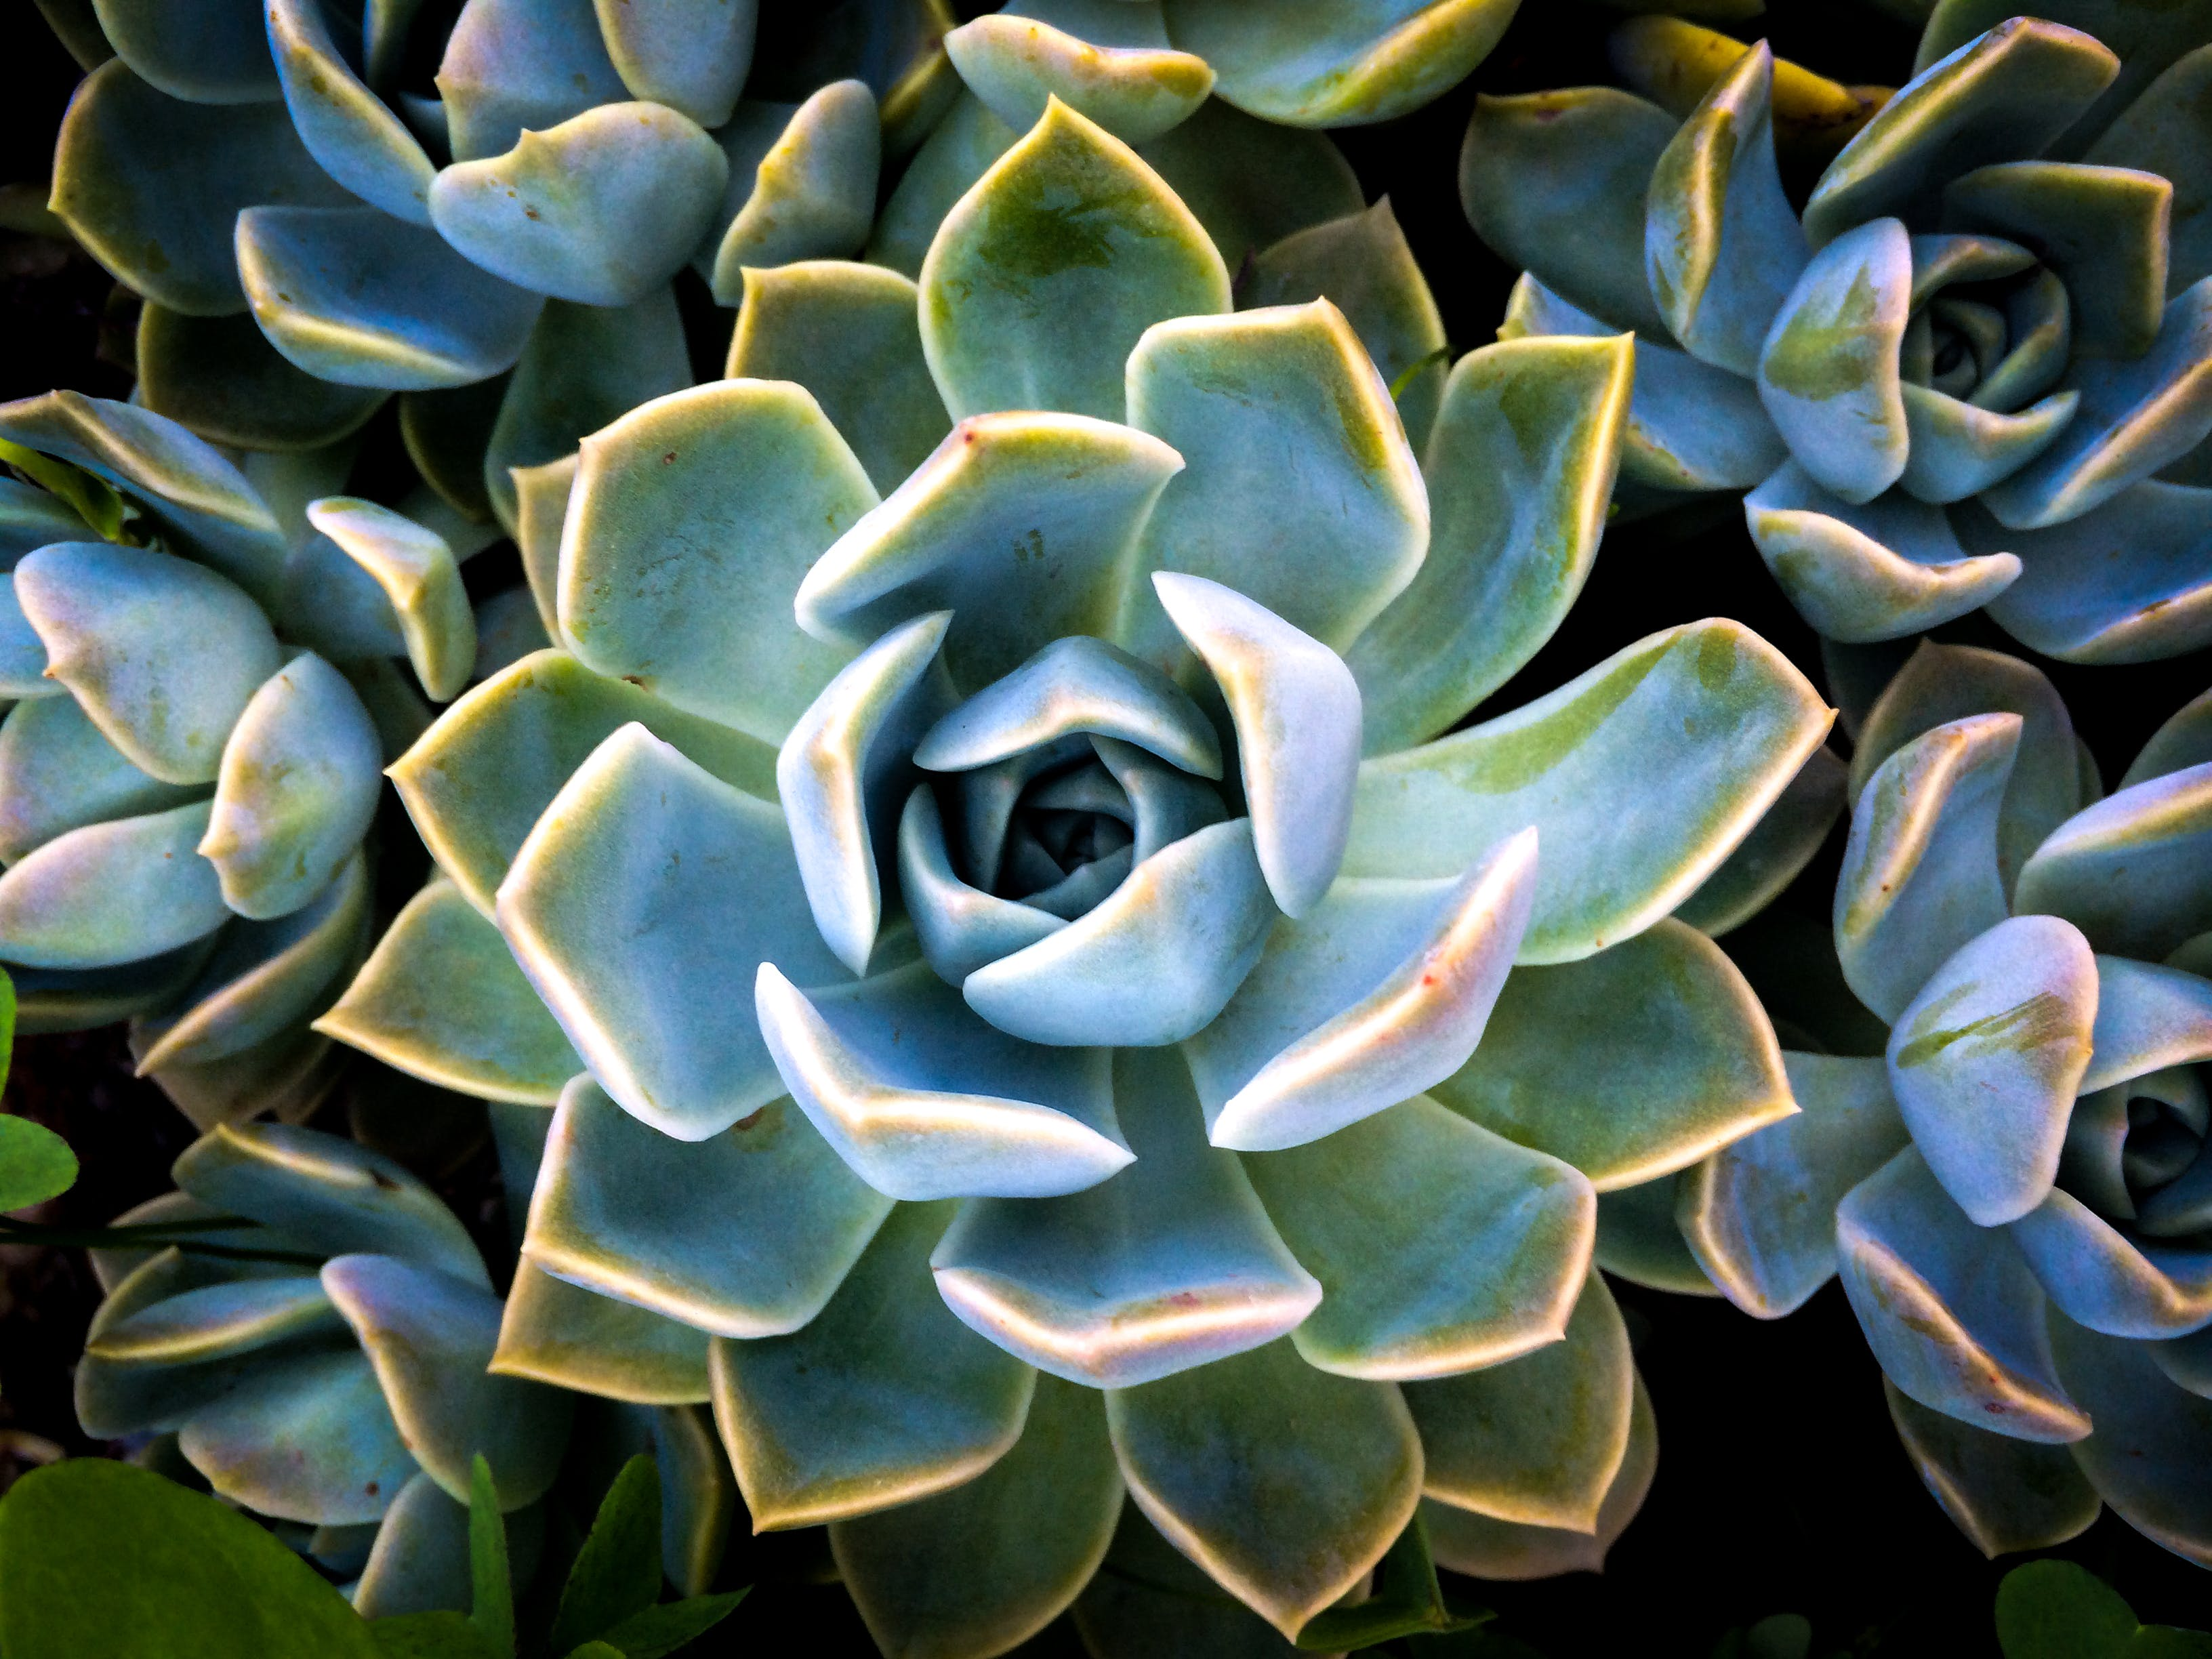 Closeup Photo of Succulent Flowers